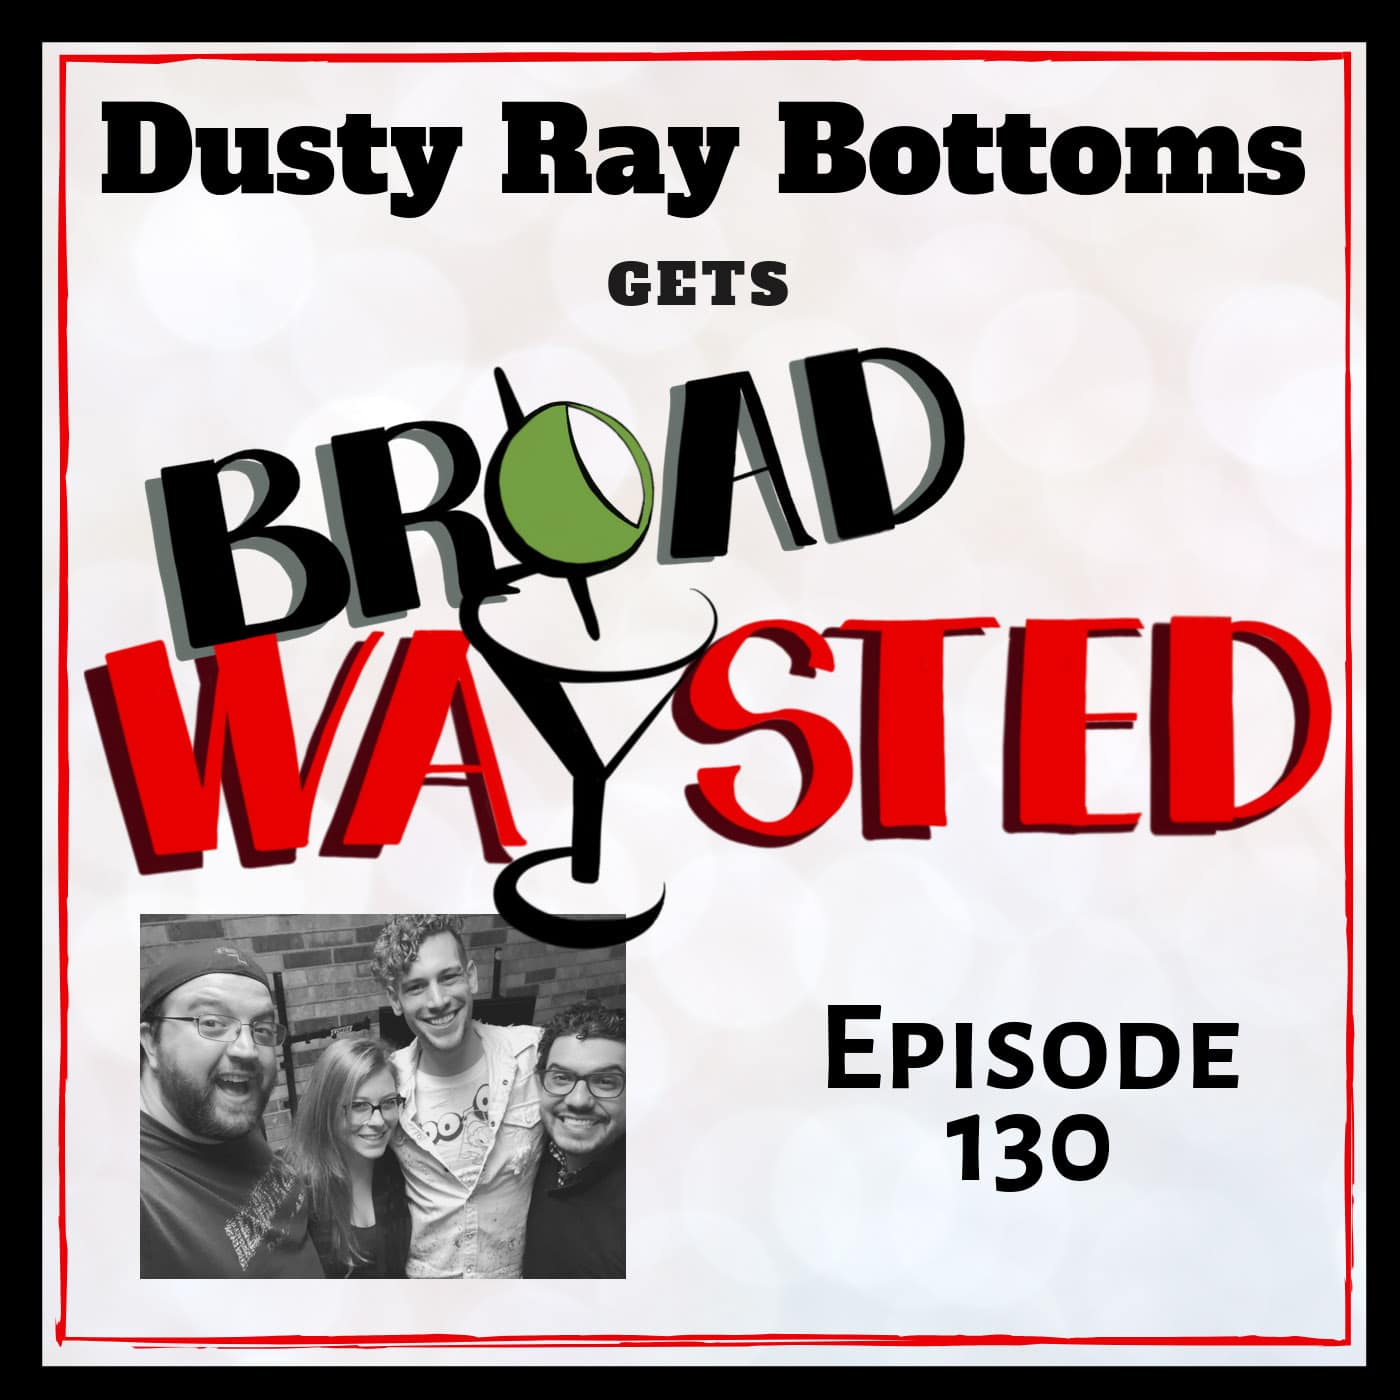 Broadwaysted Ep 130 Dusty Ray Bottoms